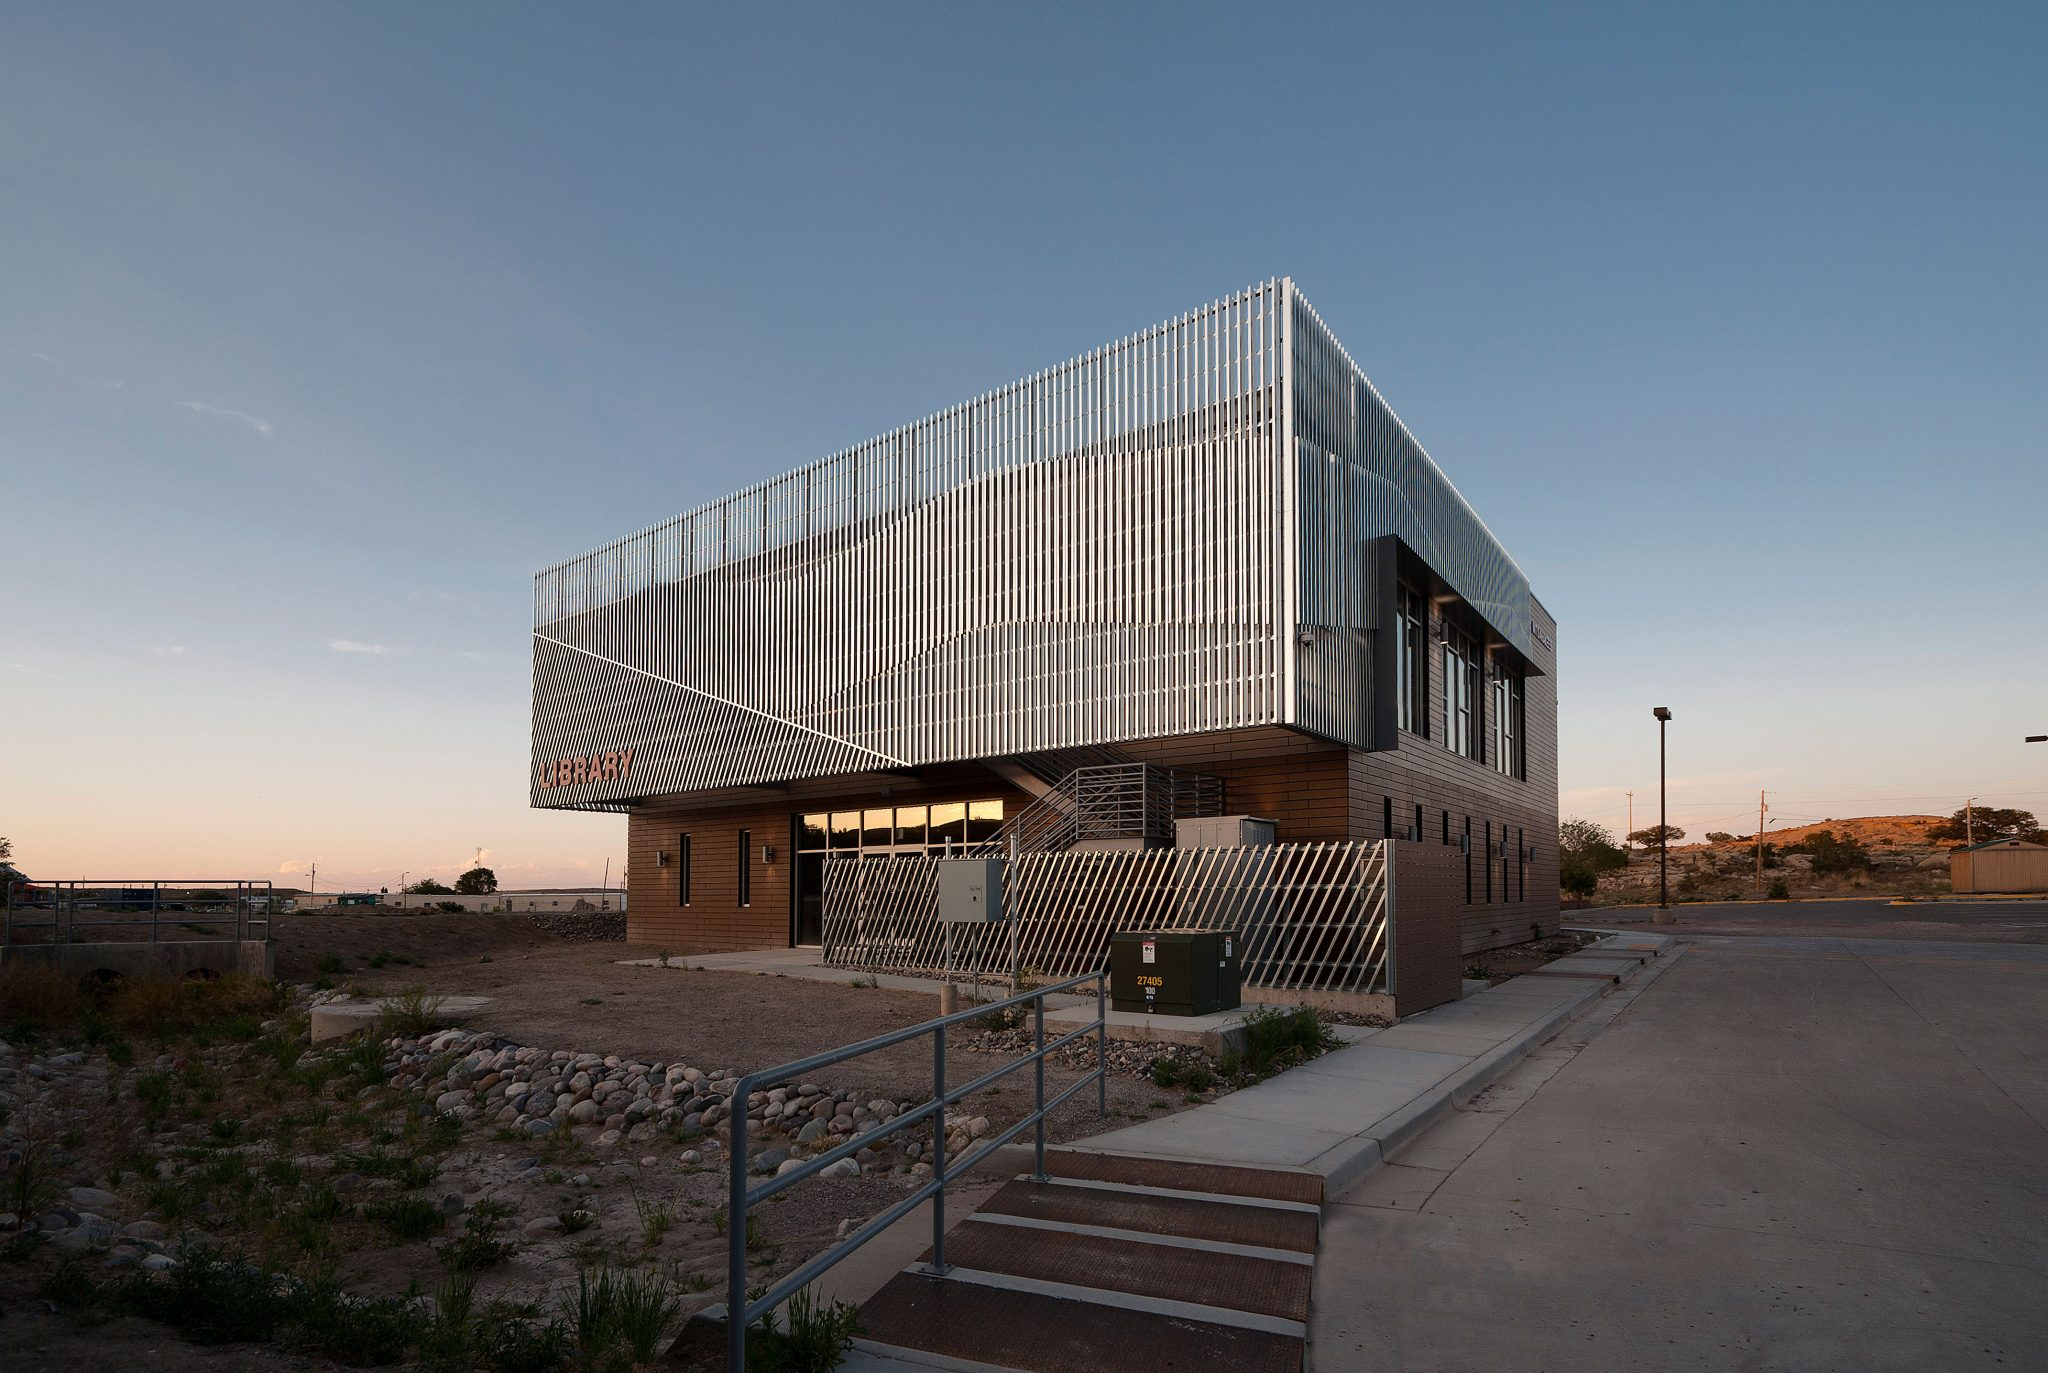 Navajo Technical University Library